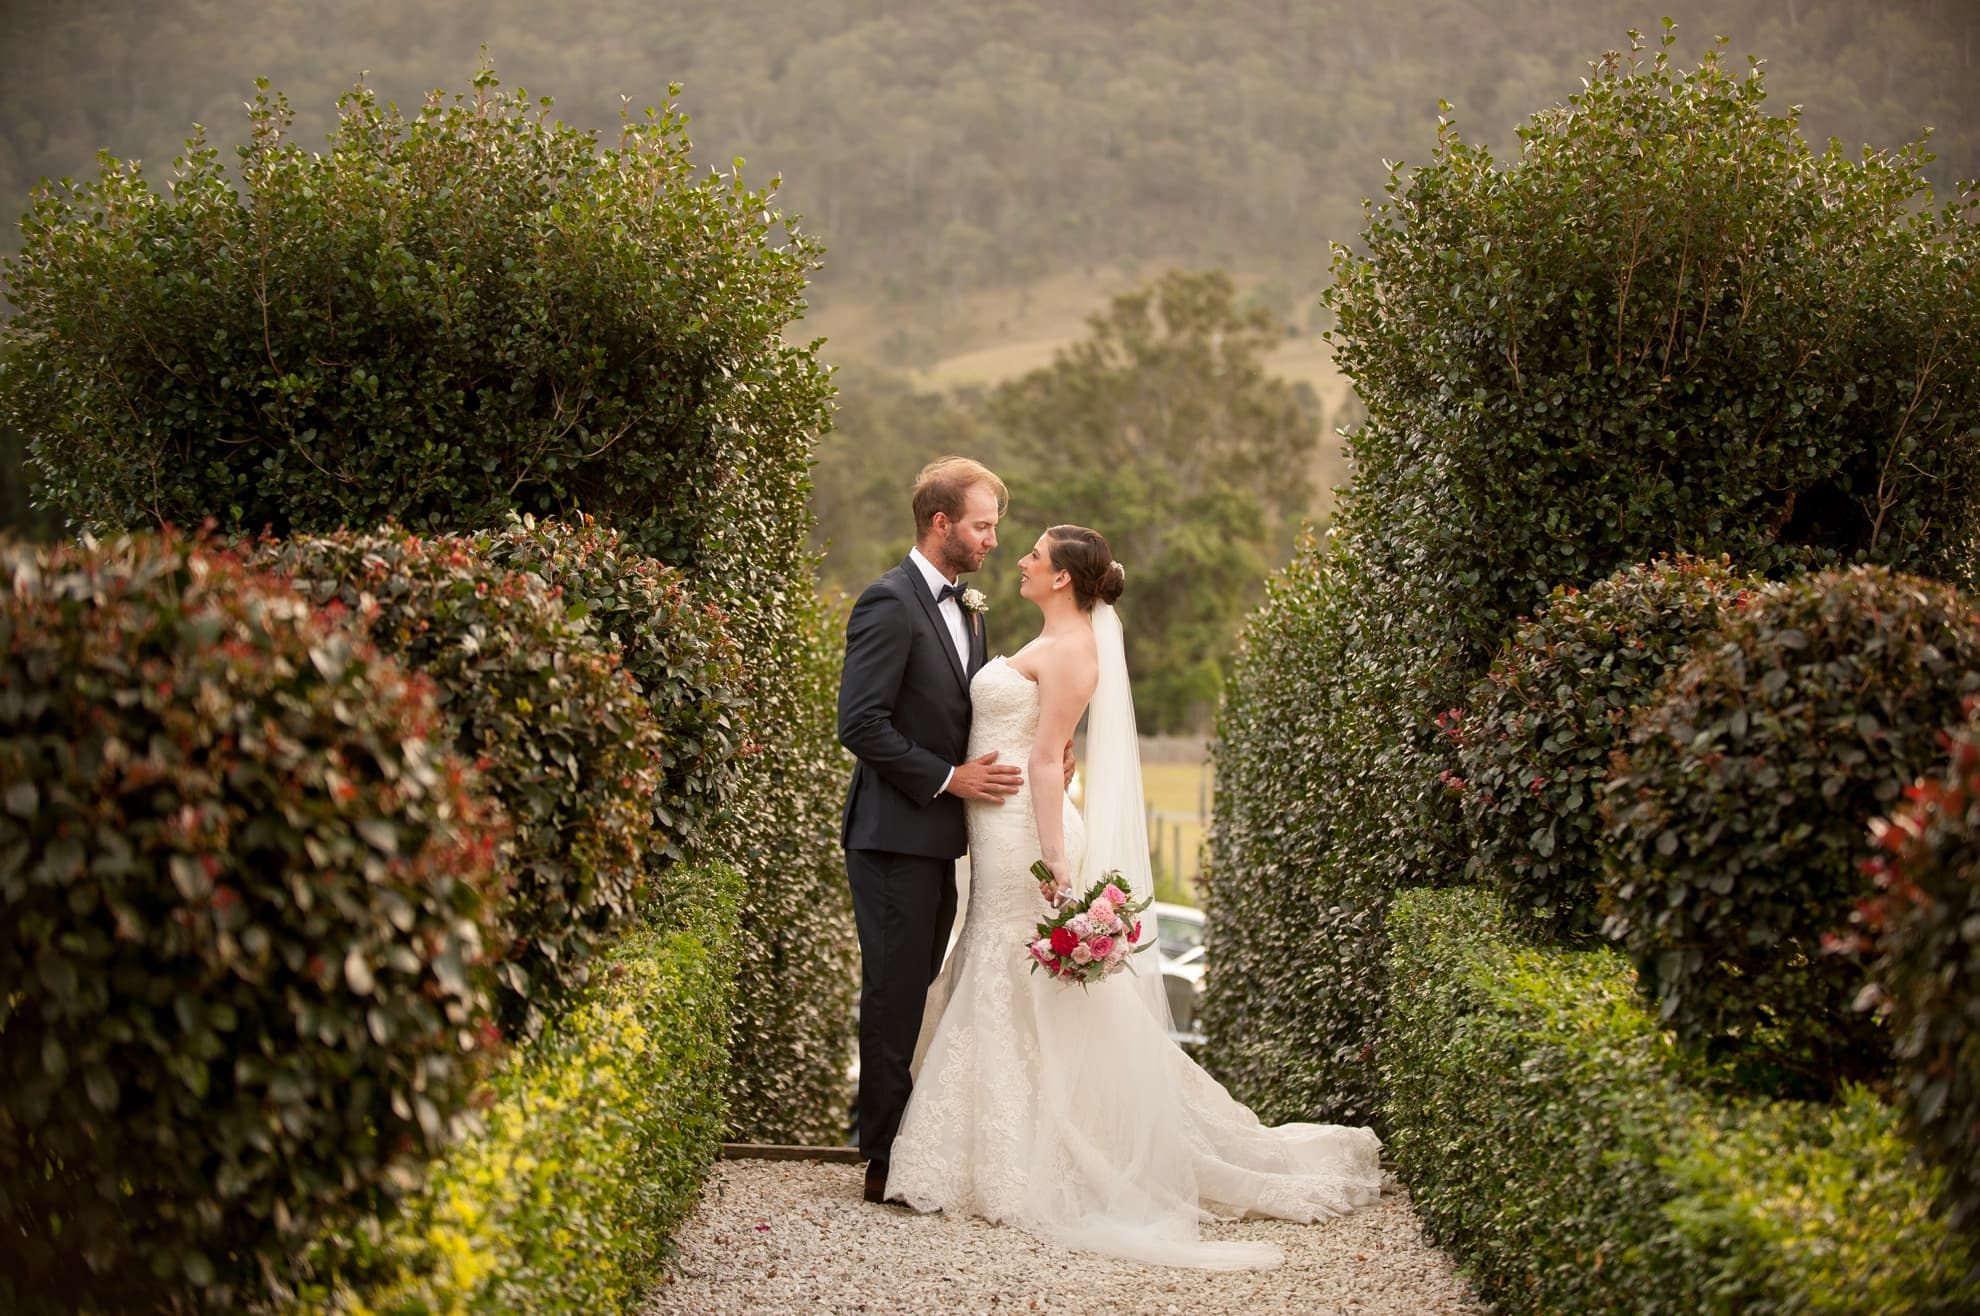 bride-and-groom-looking-at-each-other-and-holding-each-other-standing-on-stone-path-with-trees-surrounding-them